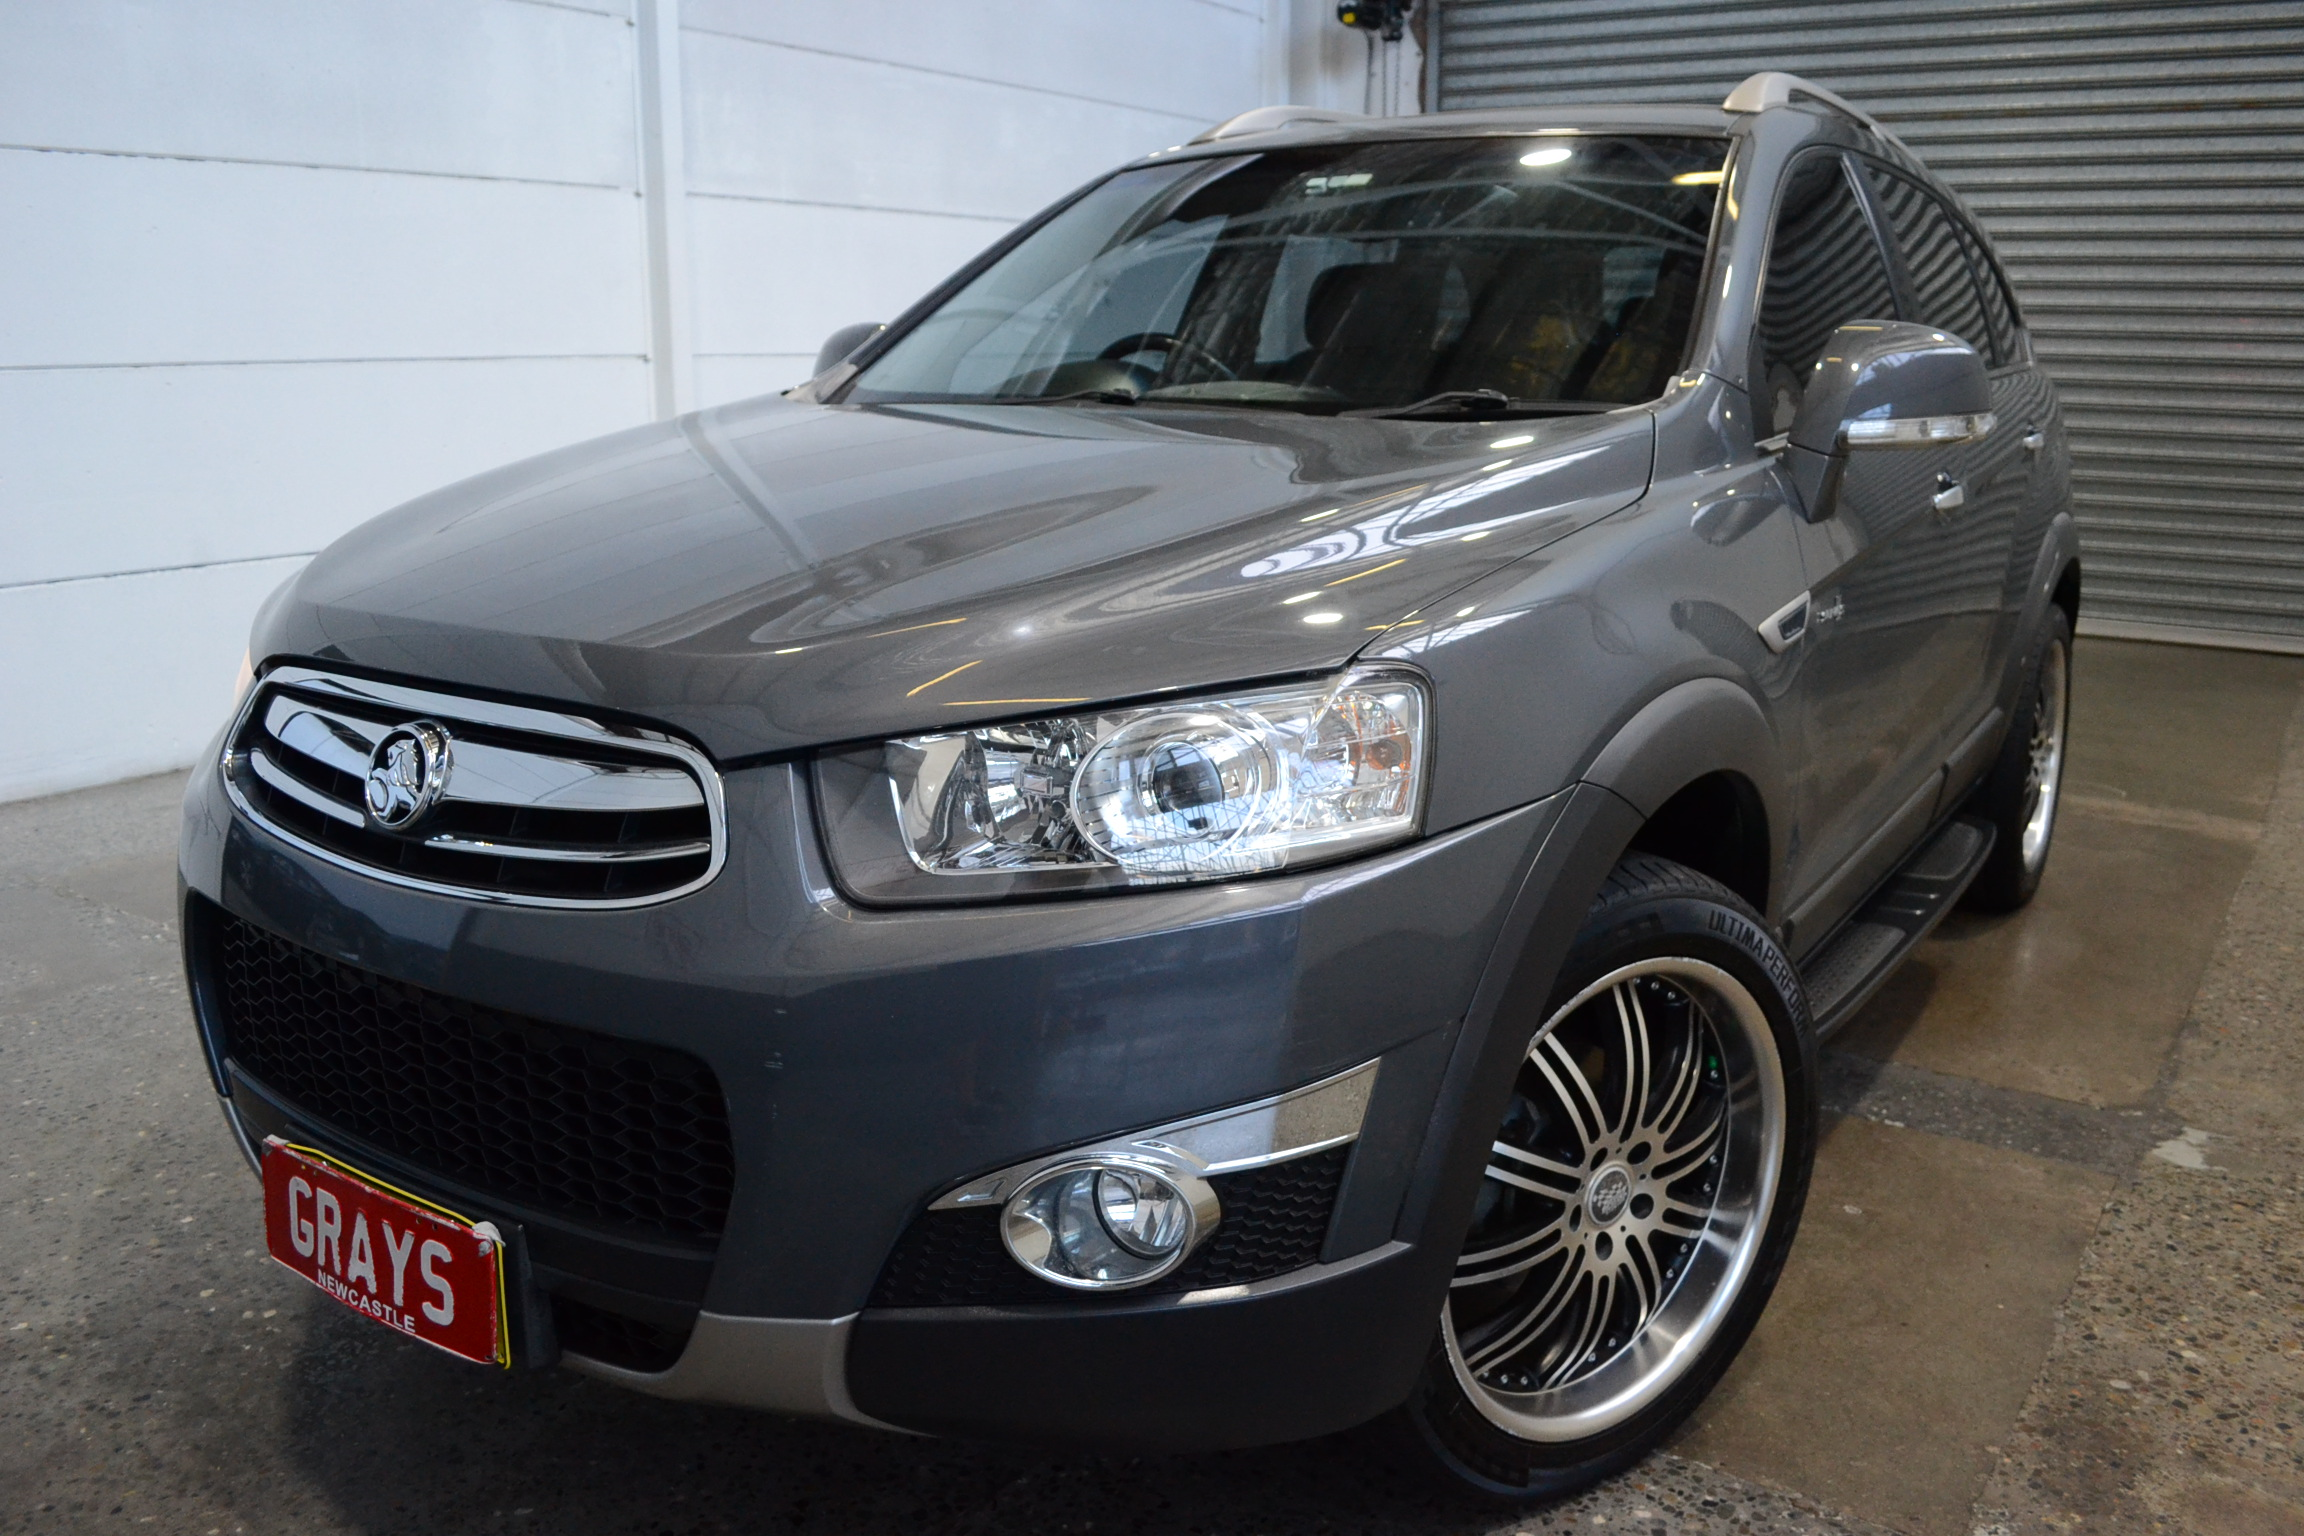 2011 Holden Captiva 7 LX AWD CG II Automatic 7 Seats Wagon